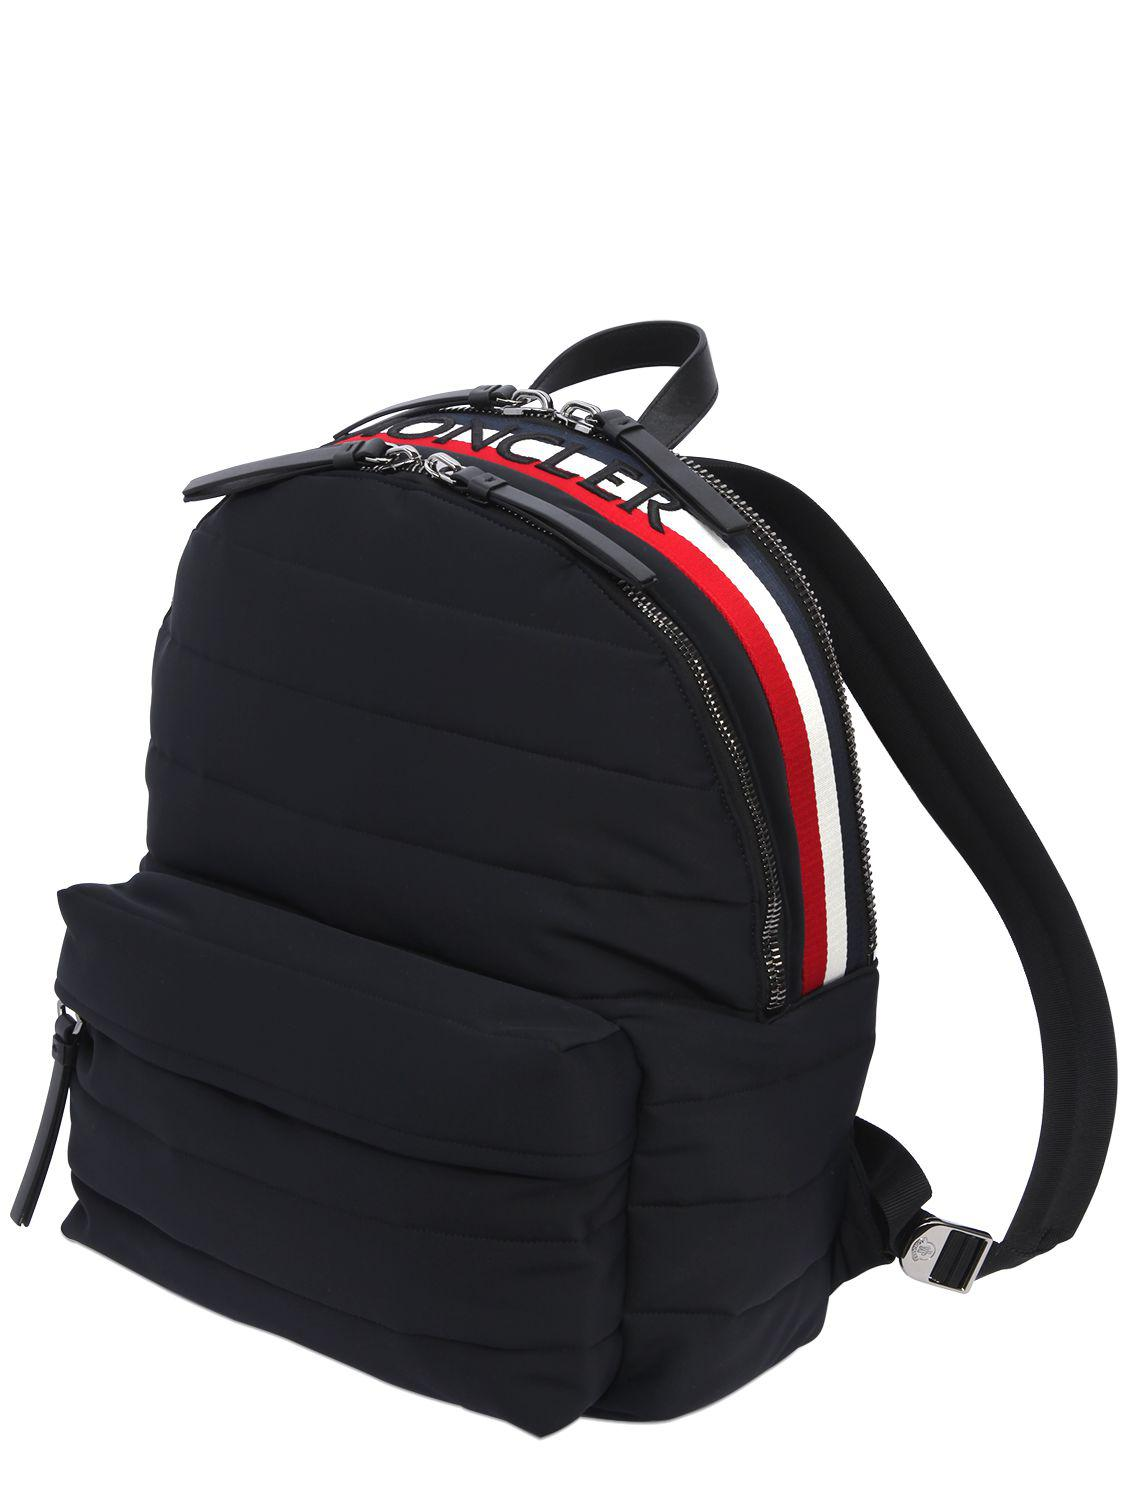 Moncler Synthetic Fugi Quilted Nylon Backpack in Black